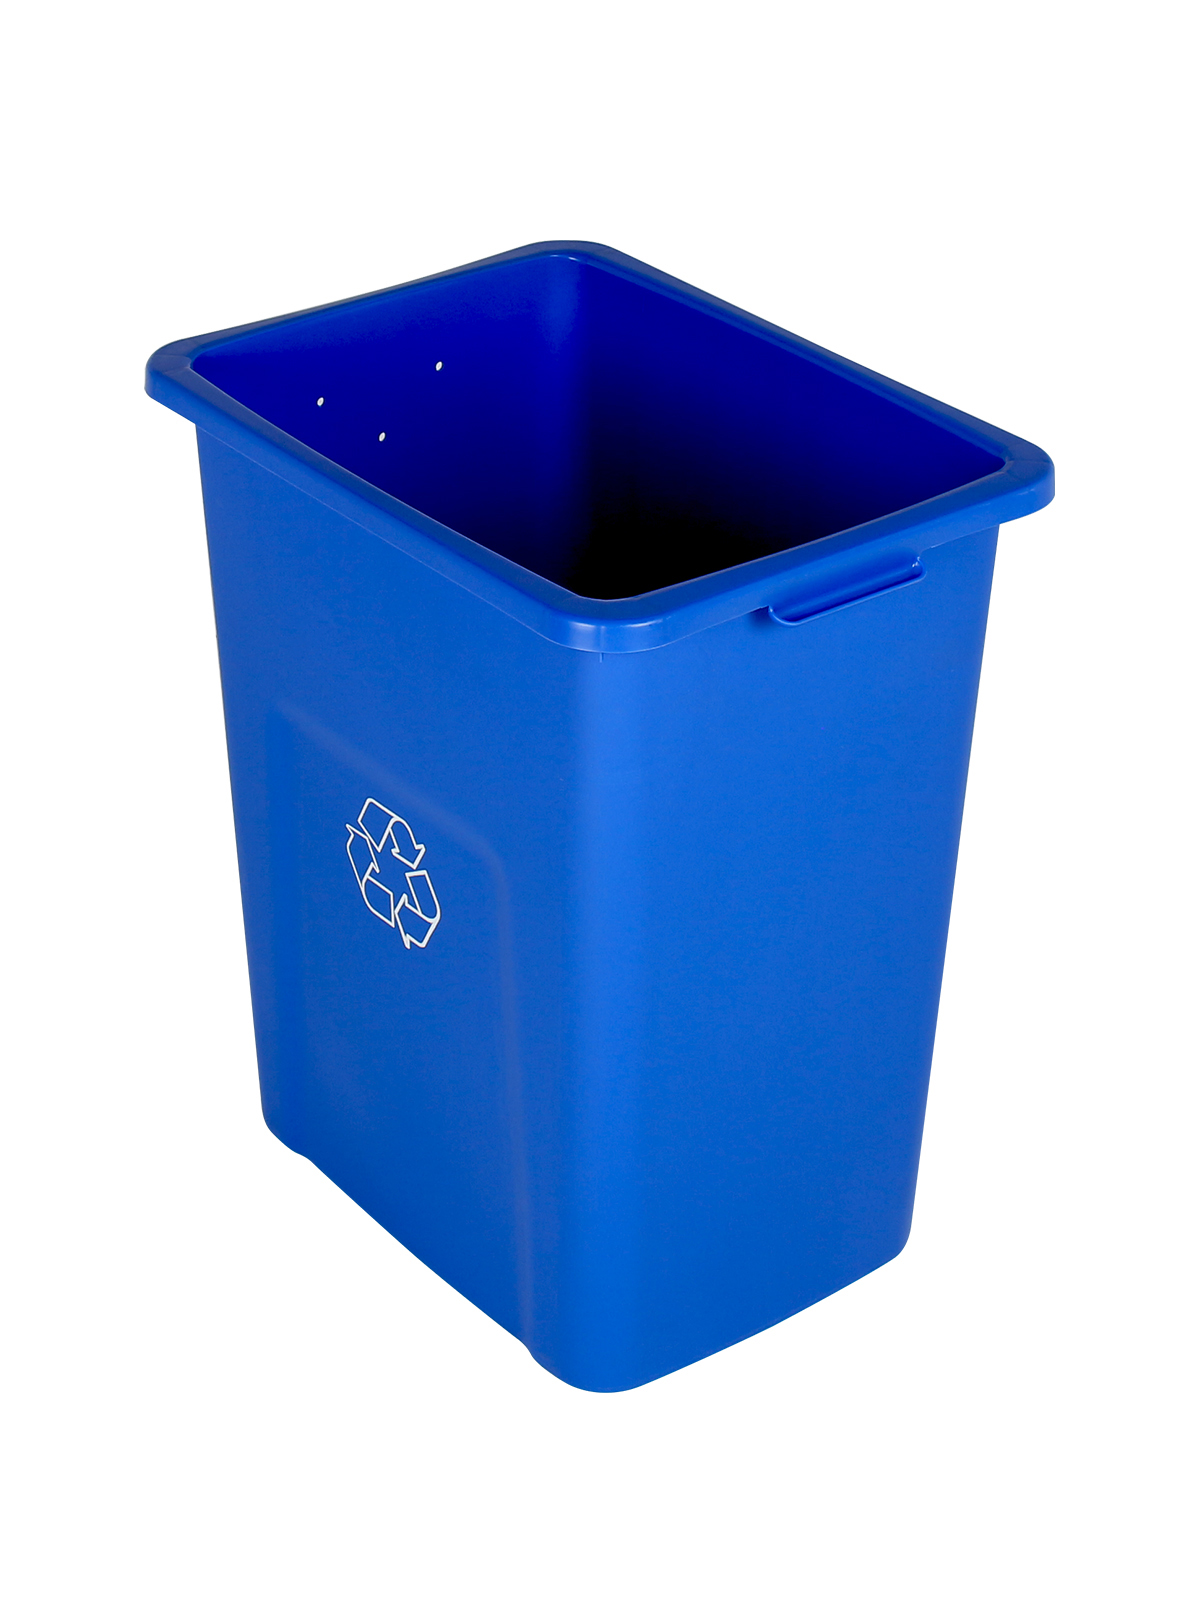 WASTE WATCHER® XL - 24 - PREDRILLED ON 2 SIDES & 1 END - LOOP 1 SIDE - ROYAL BLUE - MOBIUS LOOP title=